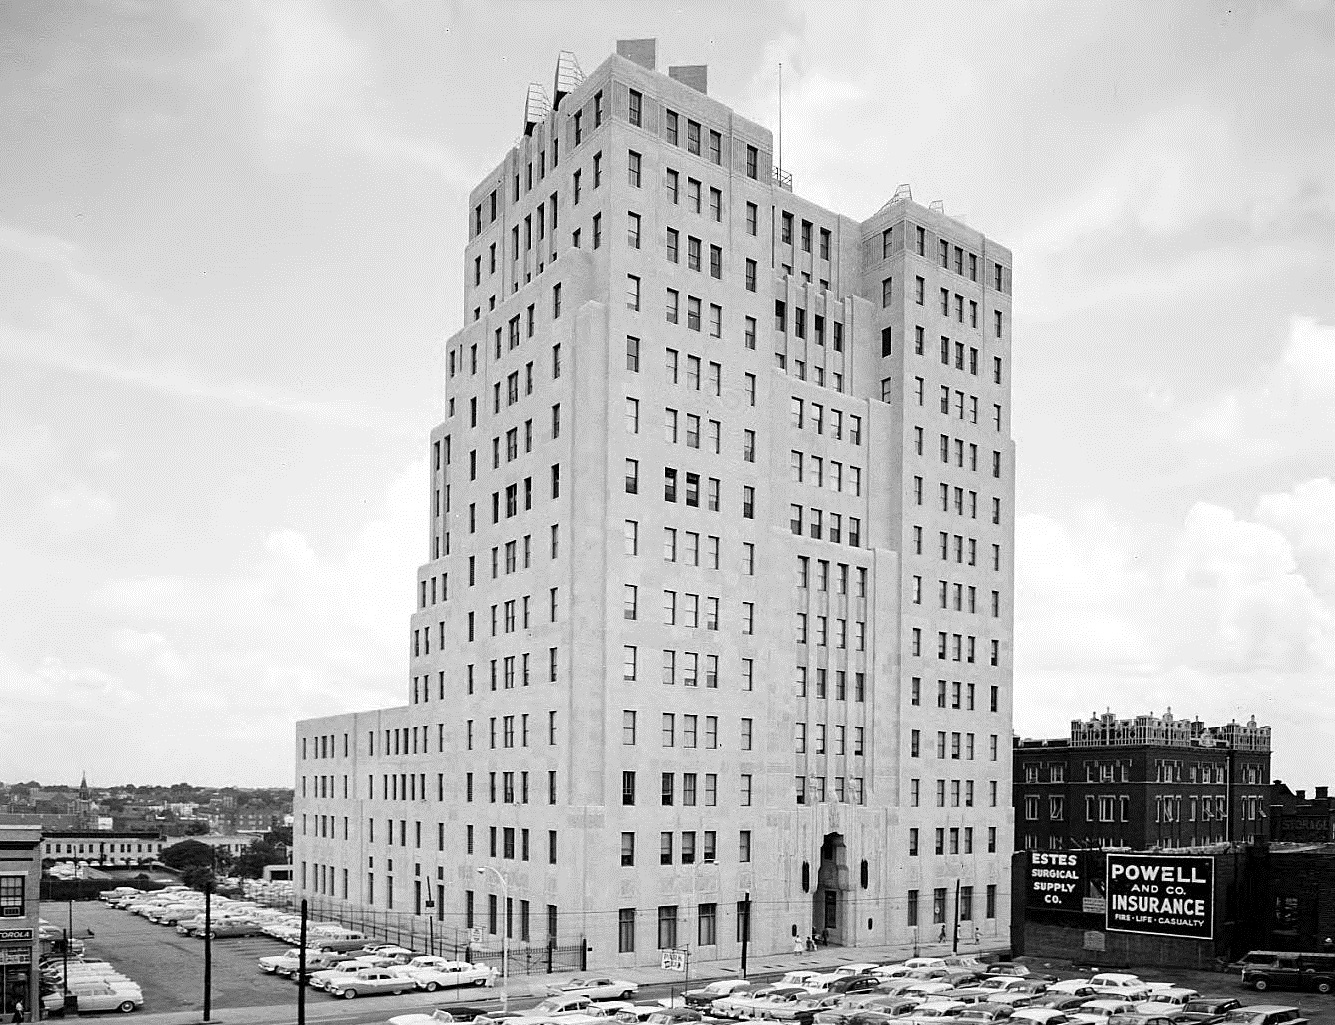 Southern Bell Telephone Building as it looked in 1961, before the AT&T tower was added a couple of years later. at 51 Ivy Street